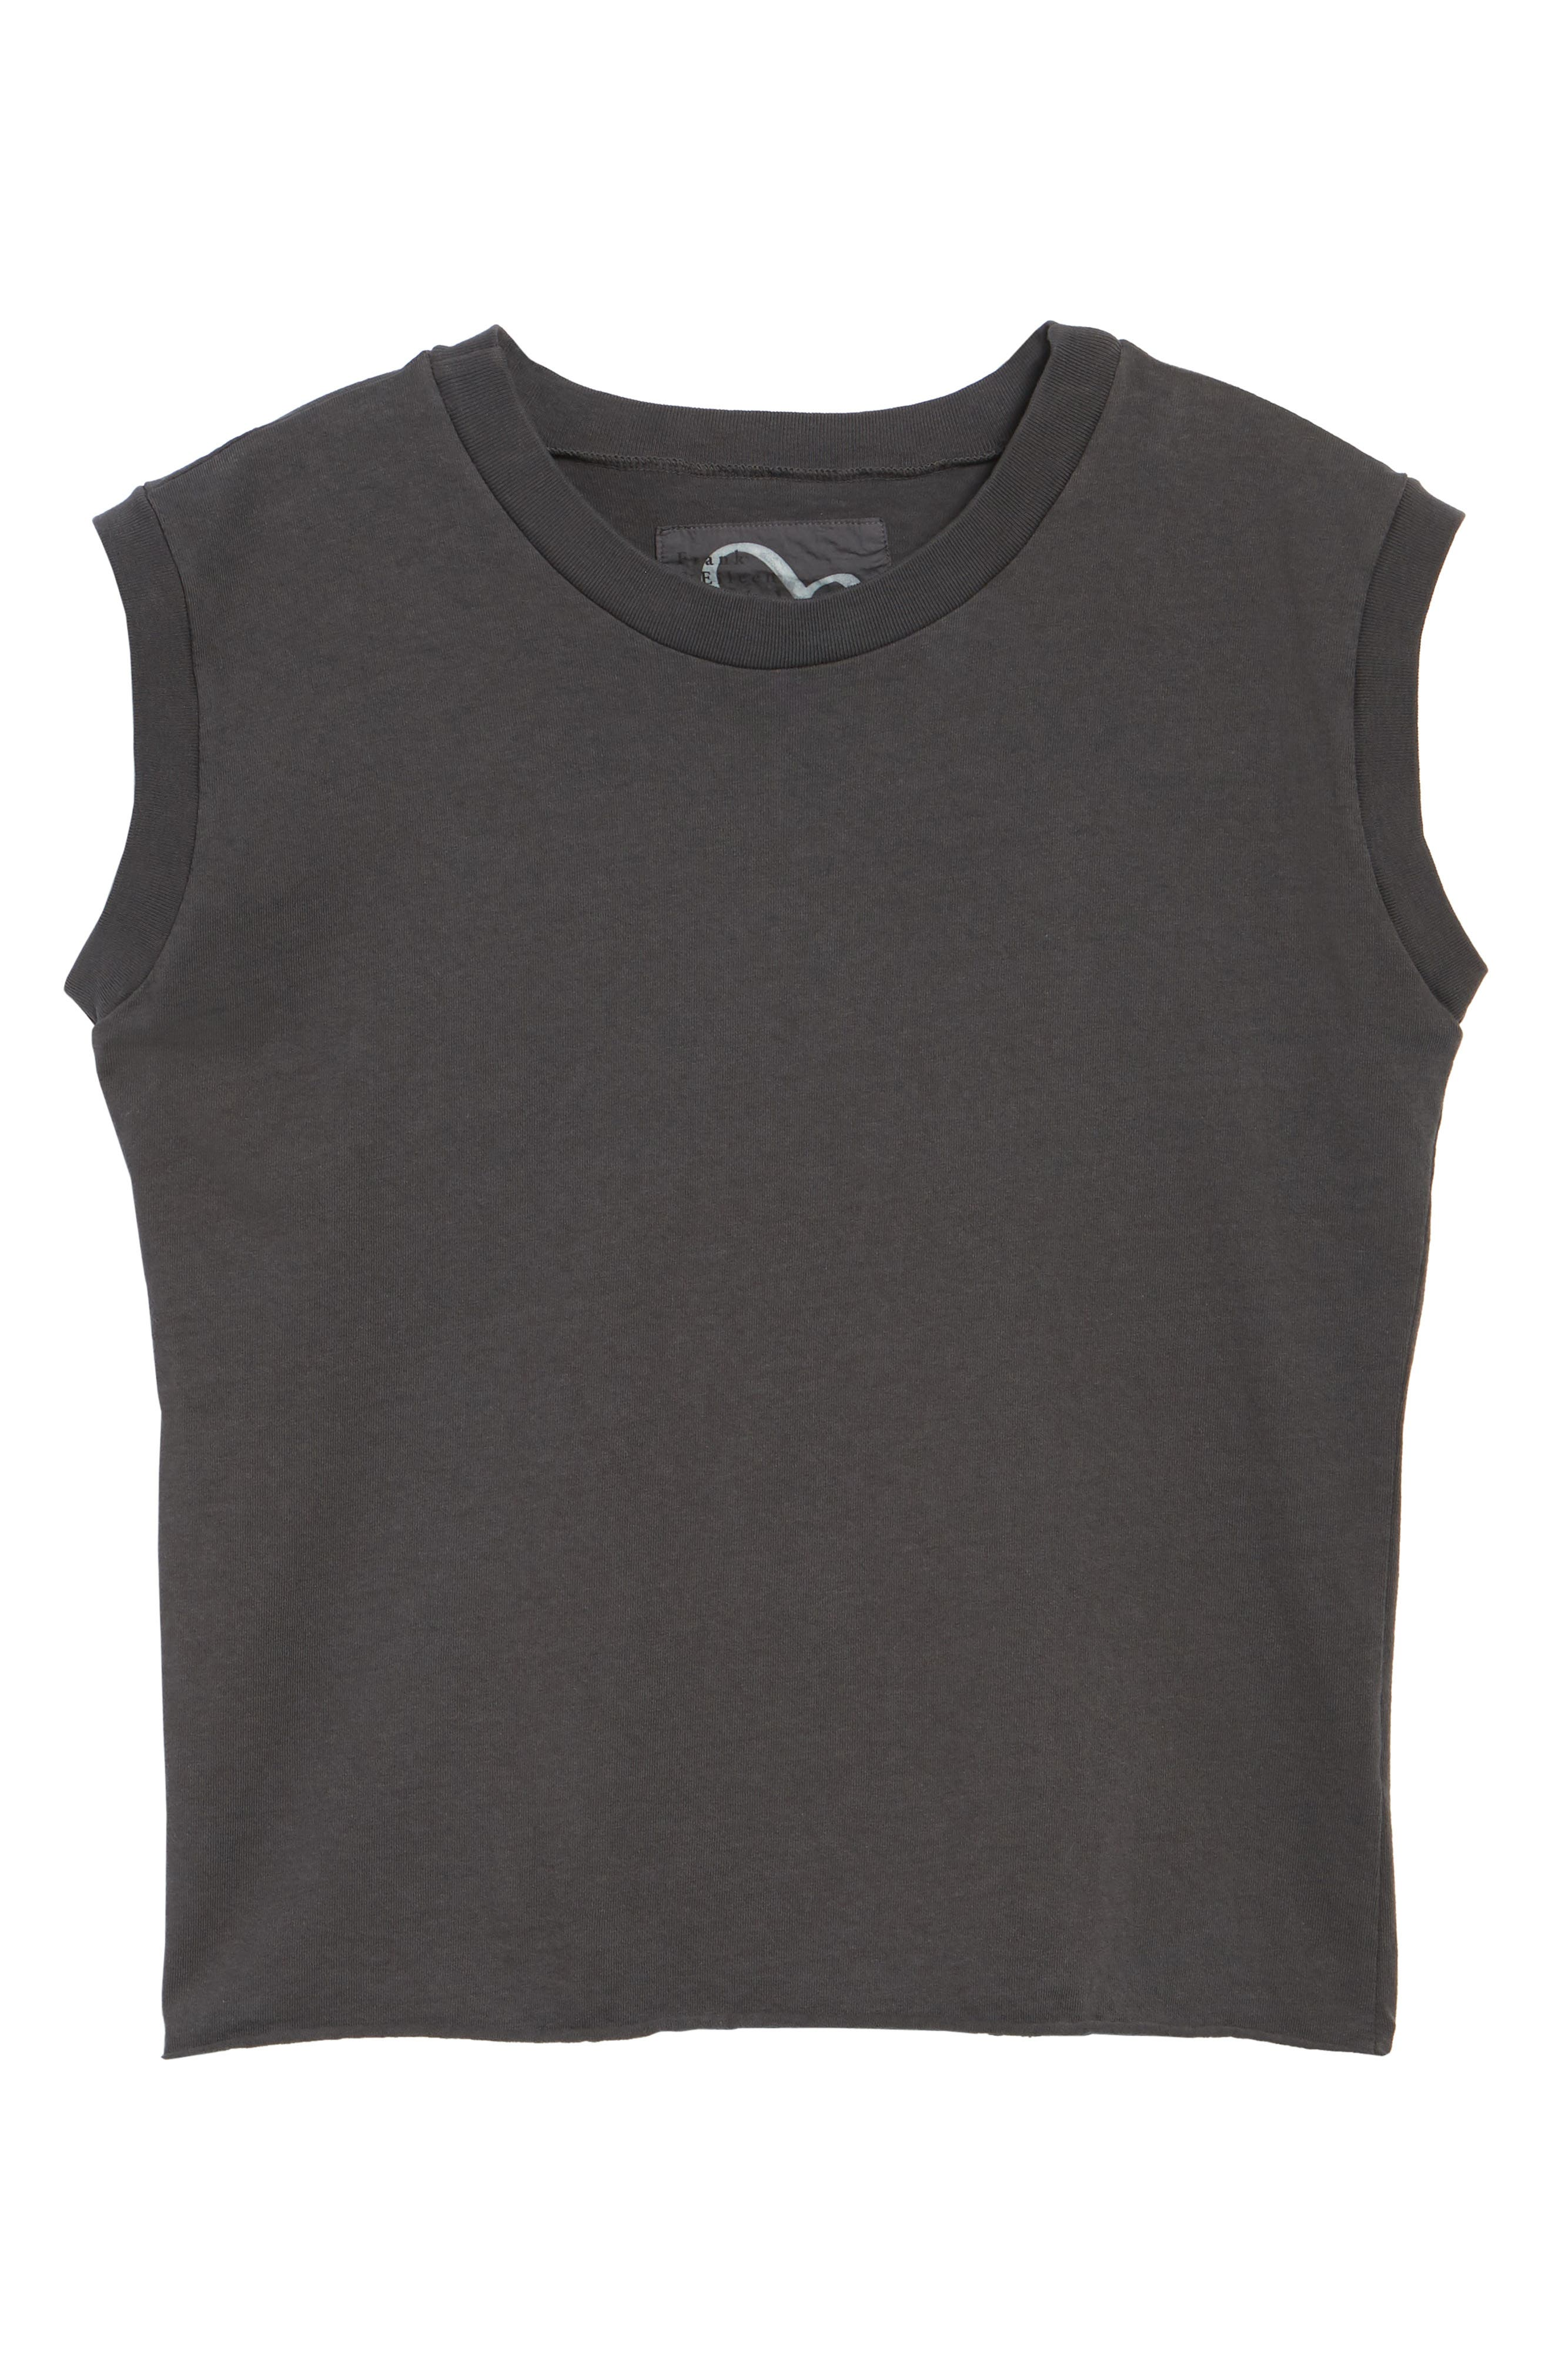 Muscle Tee,                             Alternate thumbnail 7, color,                             020